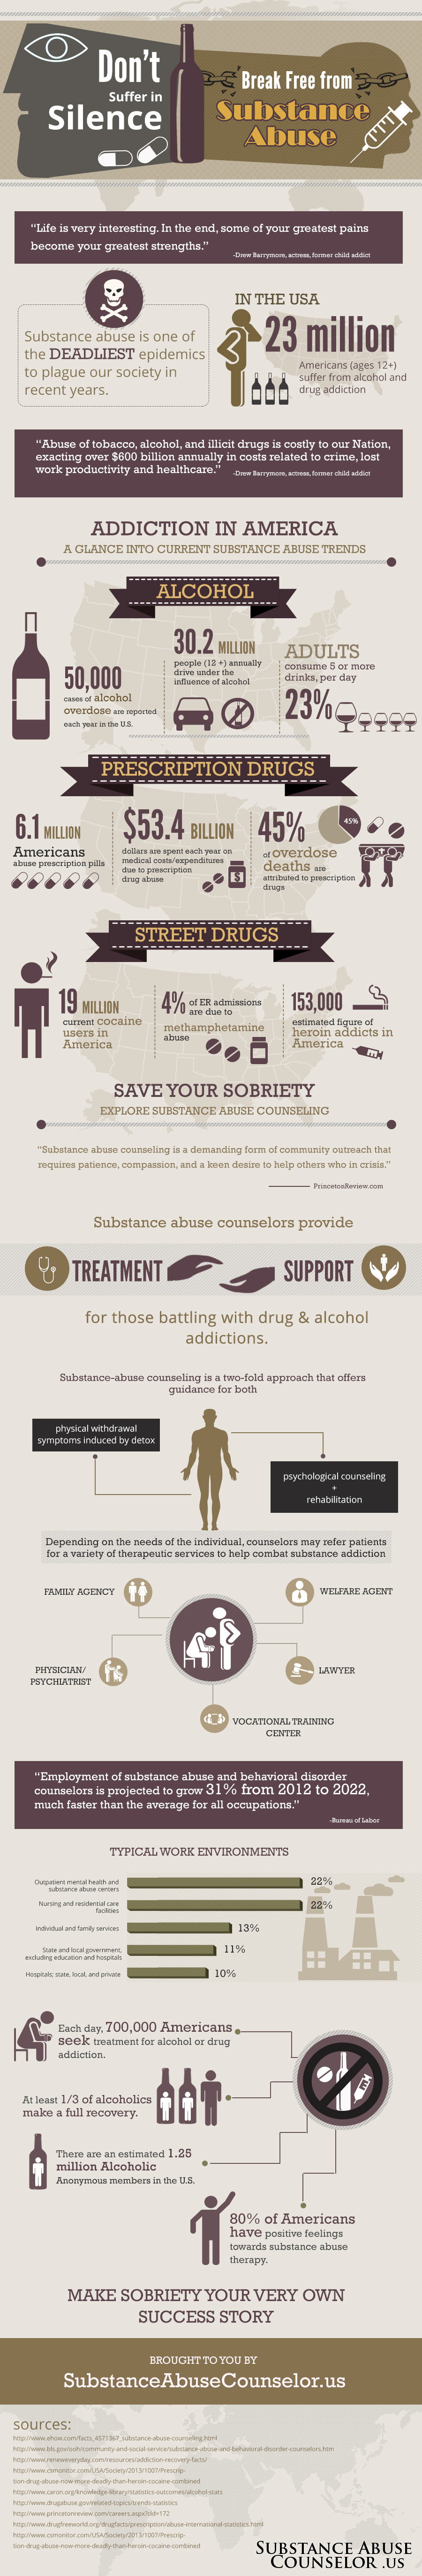 Don't Suffer in Silence, Break Free from Substance Abuse